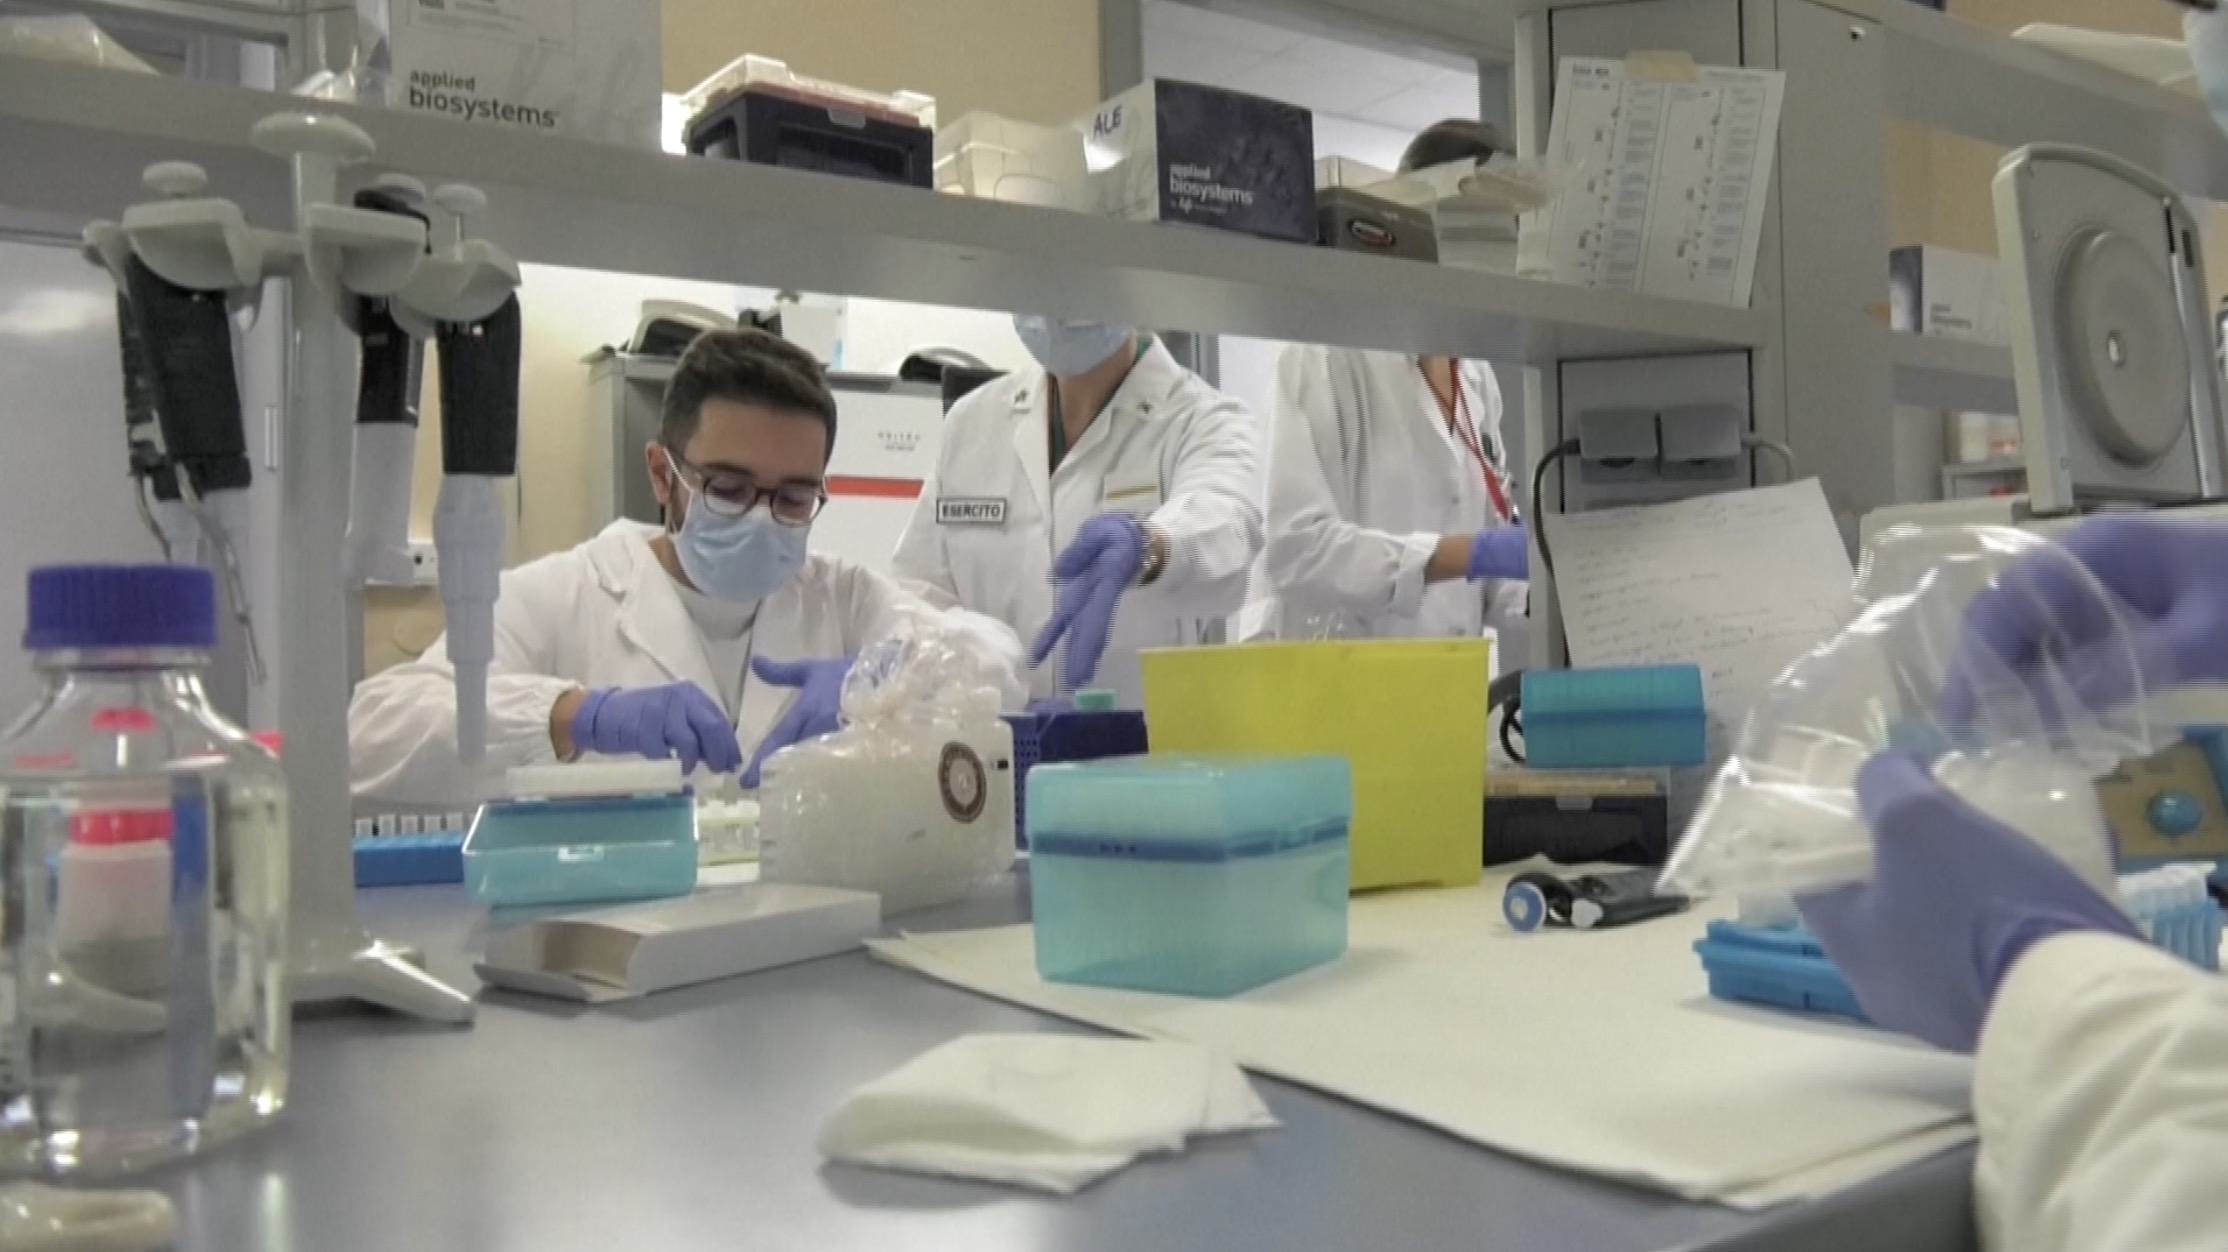 Researchers find Italian woman infected with COVID-19 in November 2019: media